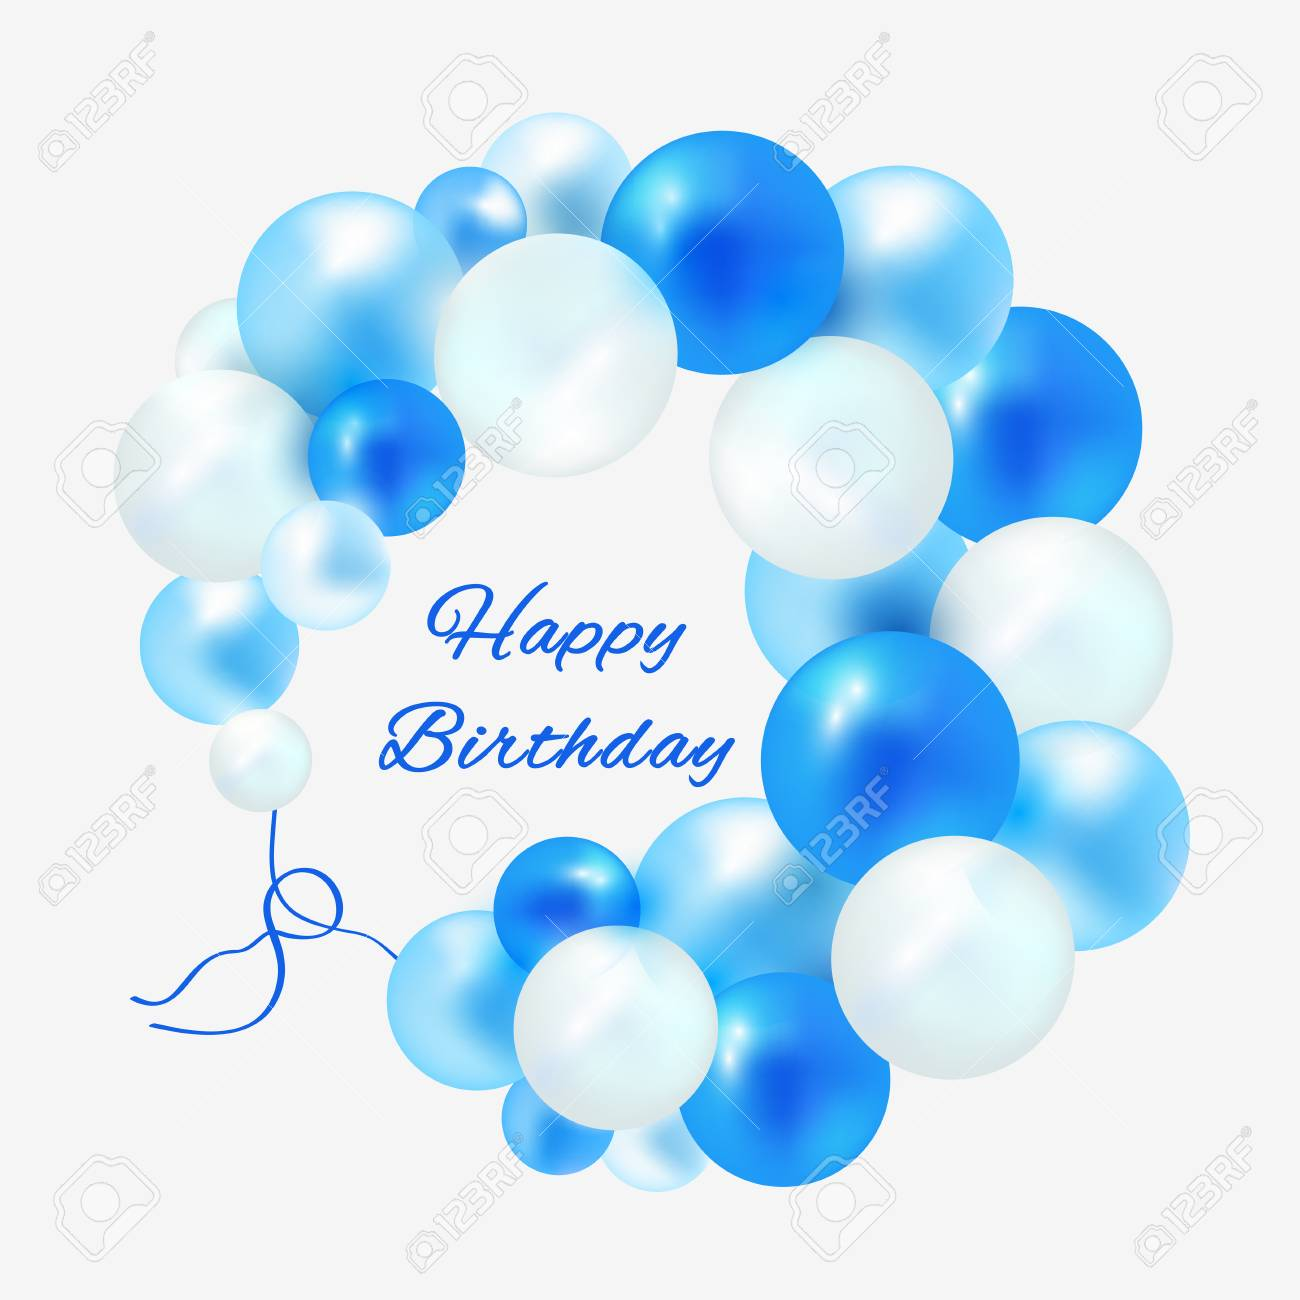 Birthday In A Frame Of Blue Balloons Royalty Free Cliparts Vectors And Stock Illustration Image 101838724